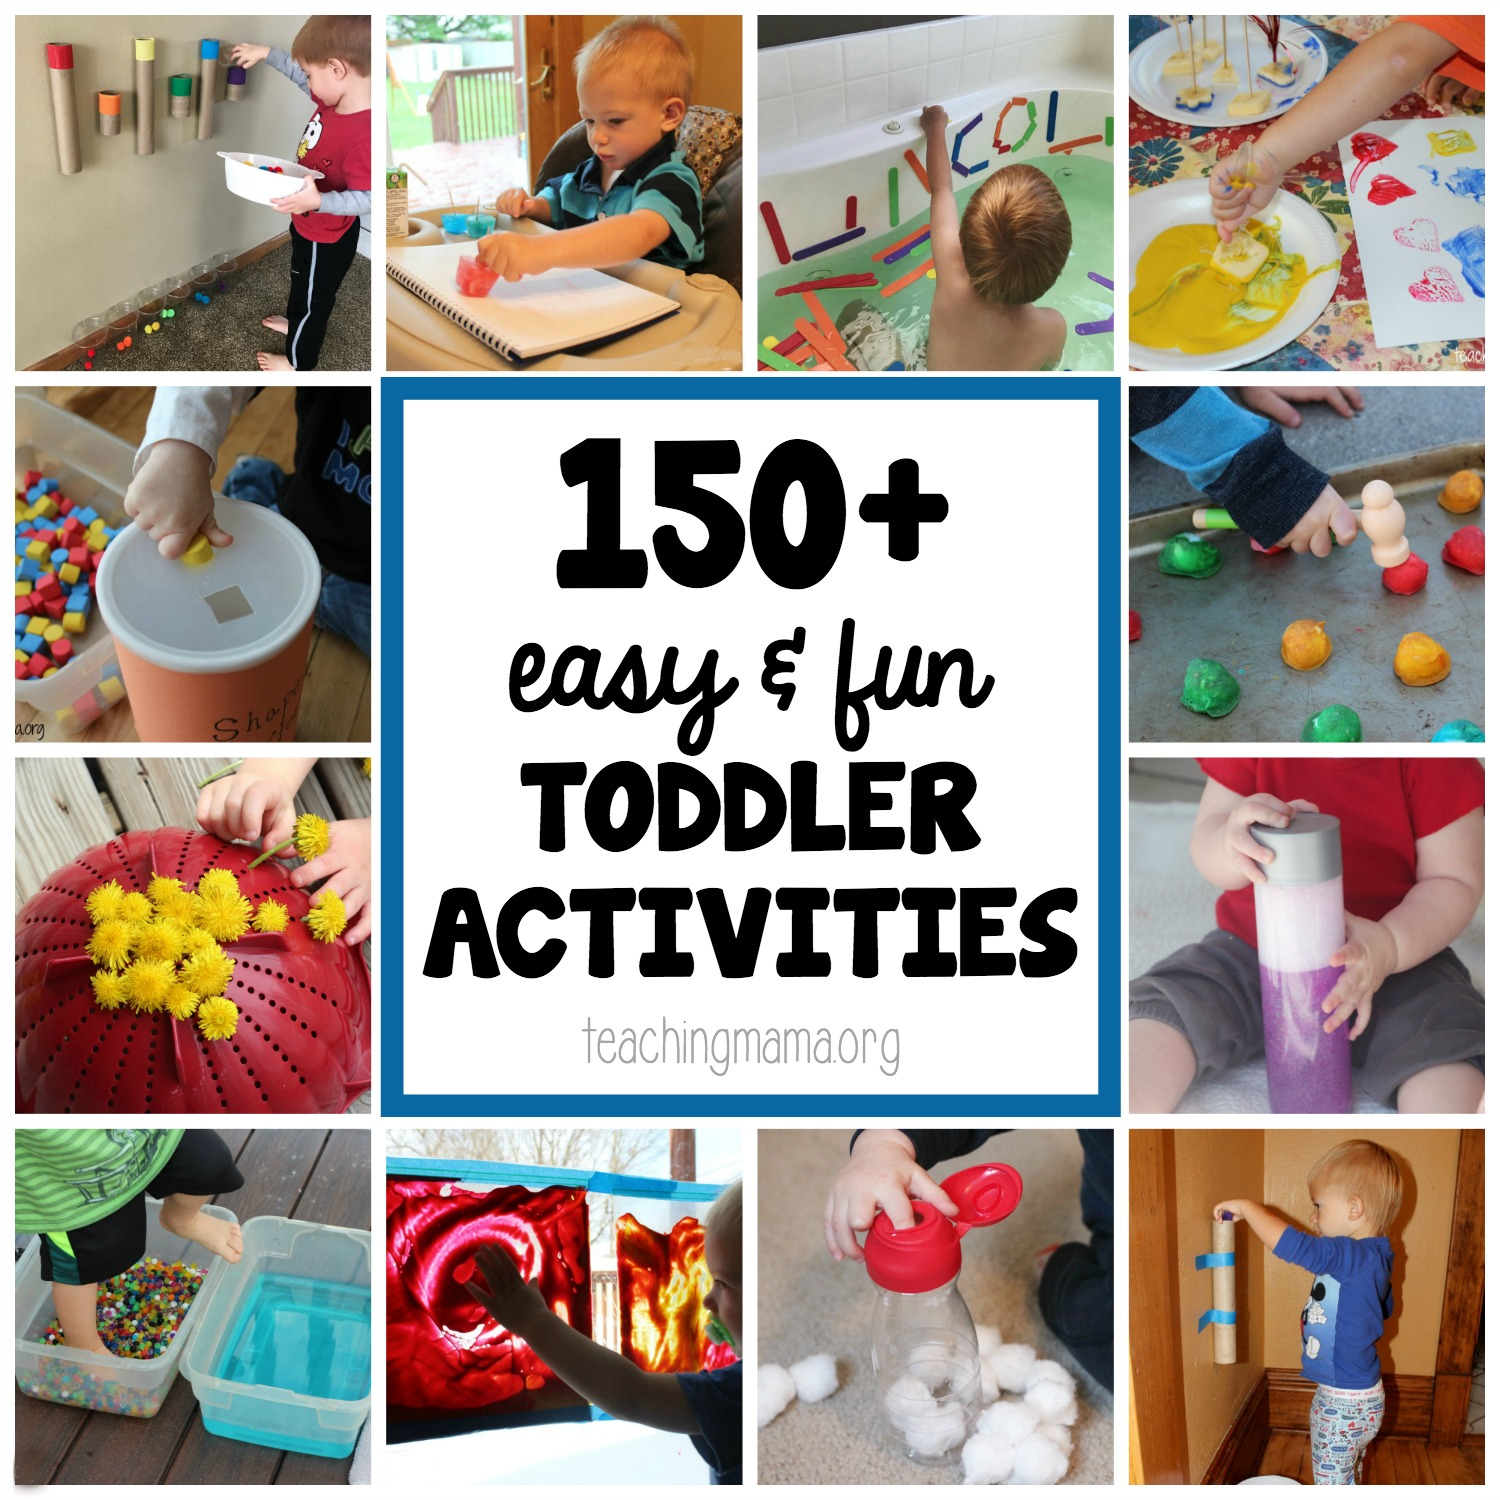 150+ Easy and Fun Toddler Activities